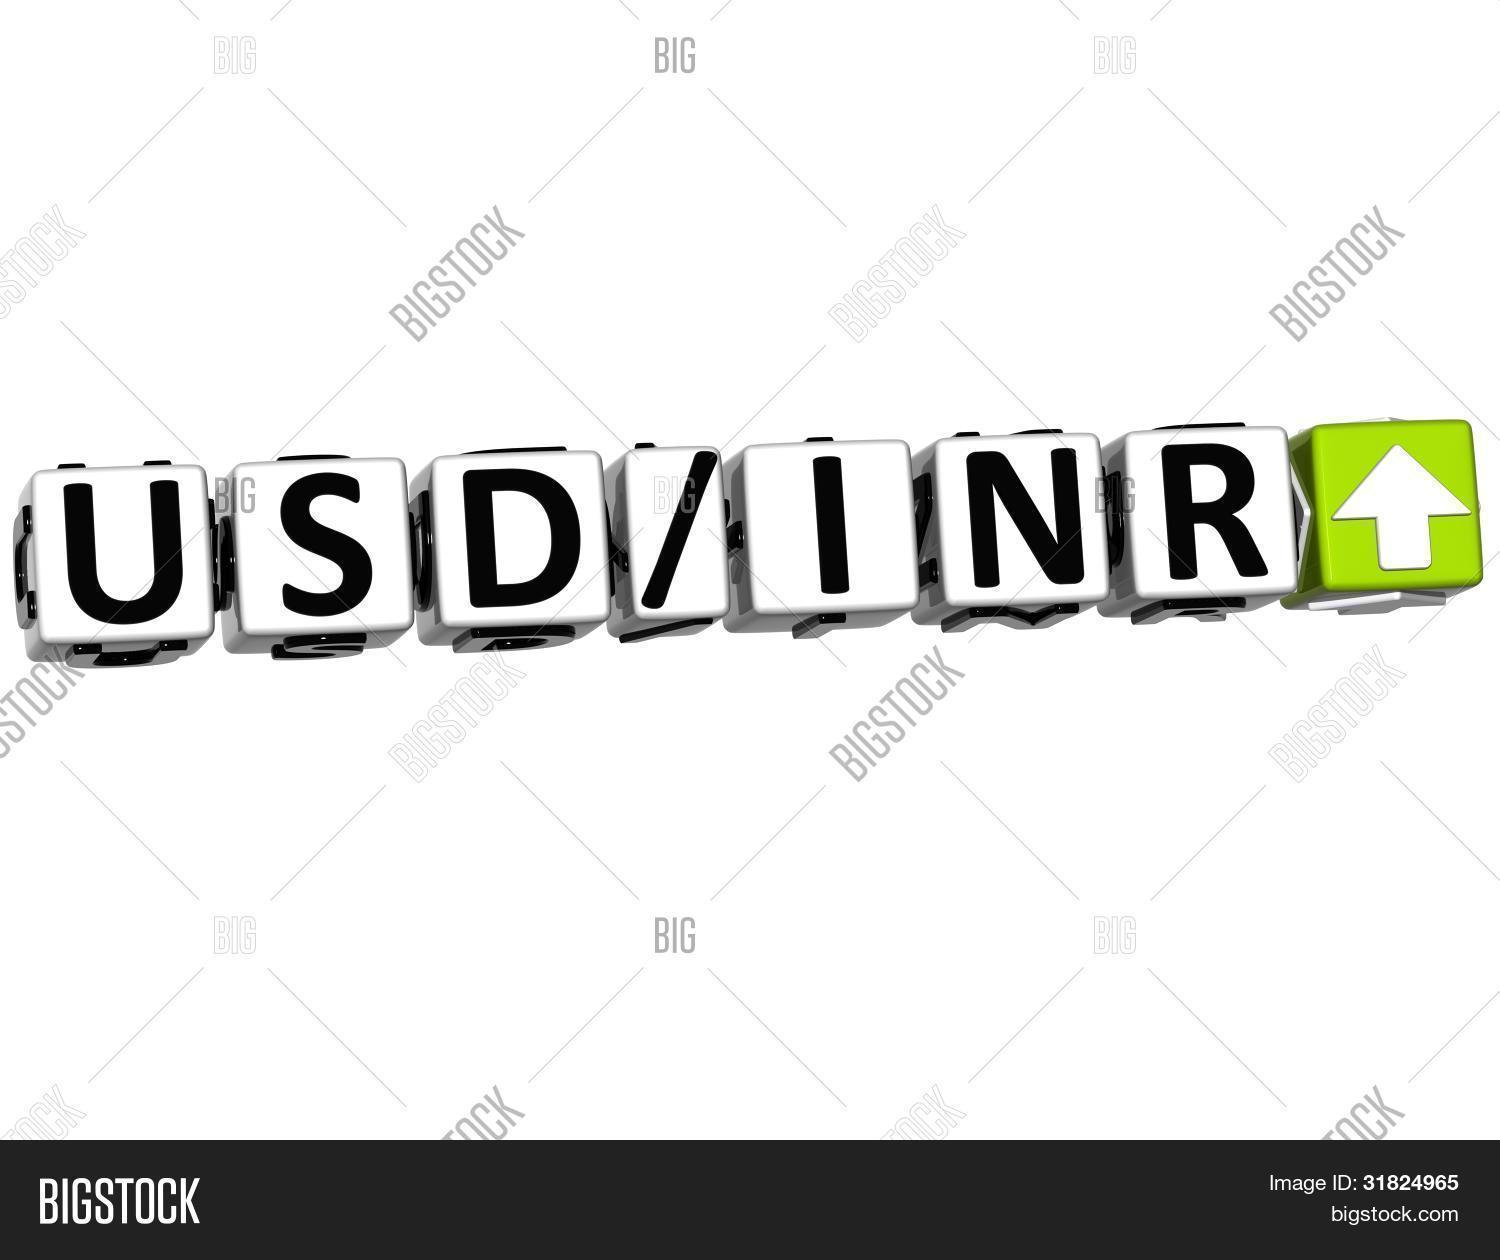 3d Currency Usd Inr Image Photo Free Trial Bigstock